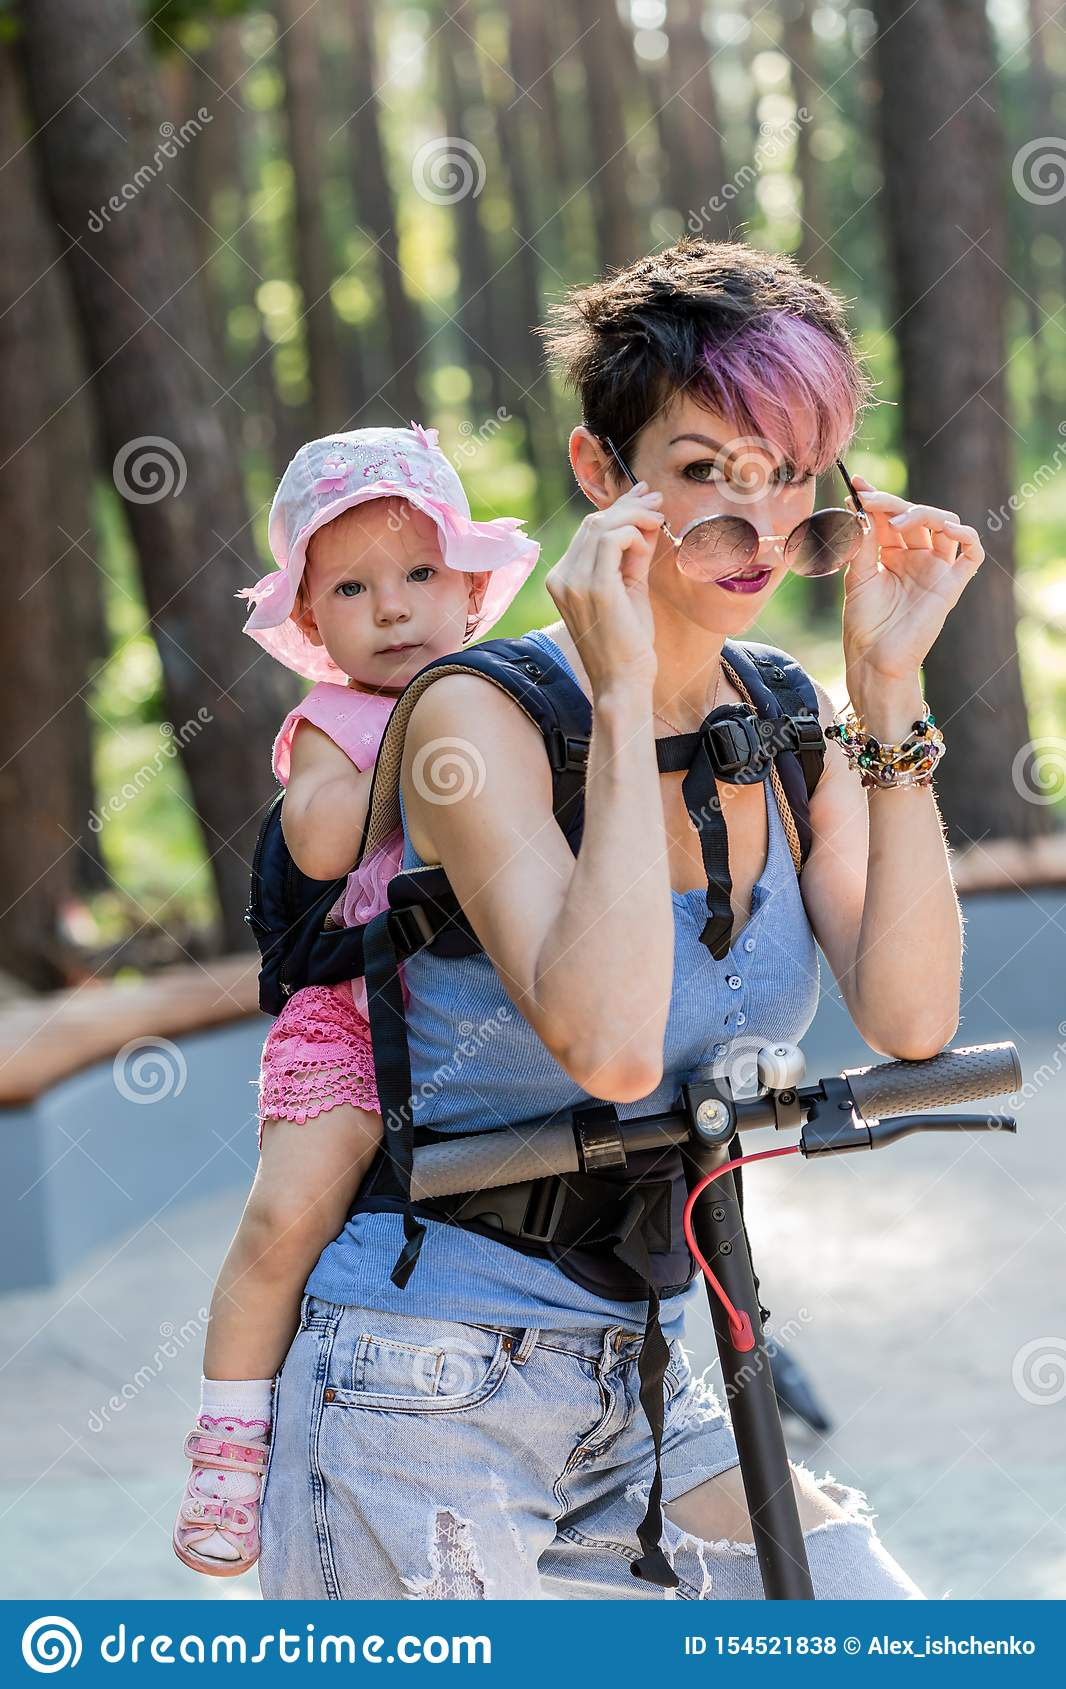 Cool attractive woman enjoys riding an electric scooter with her daughter in sling